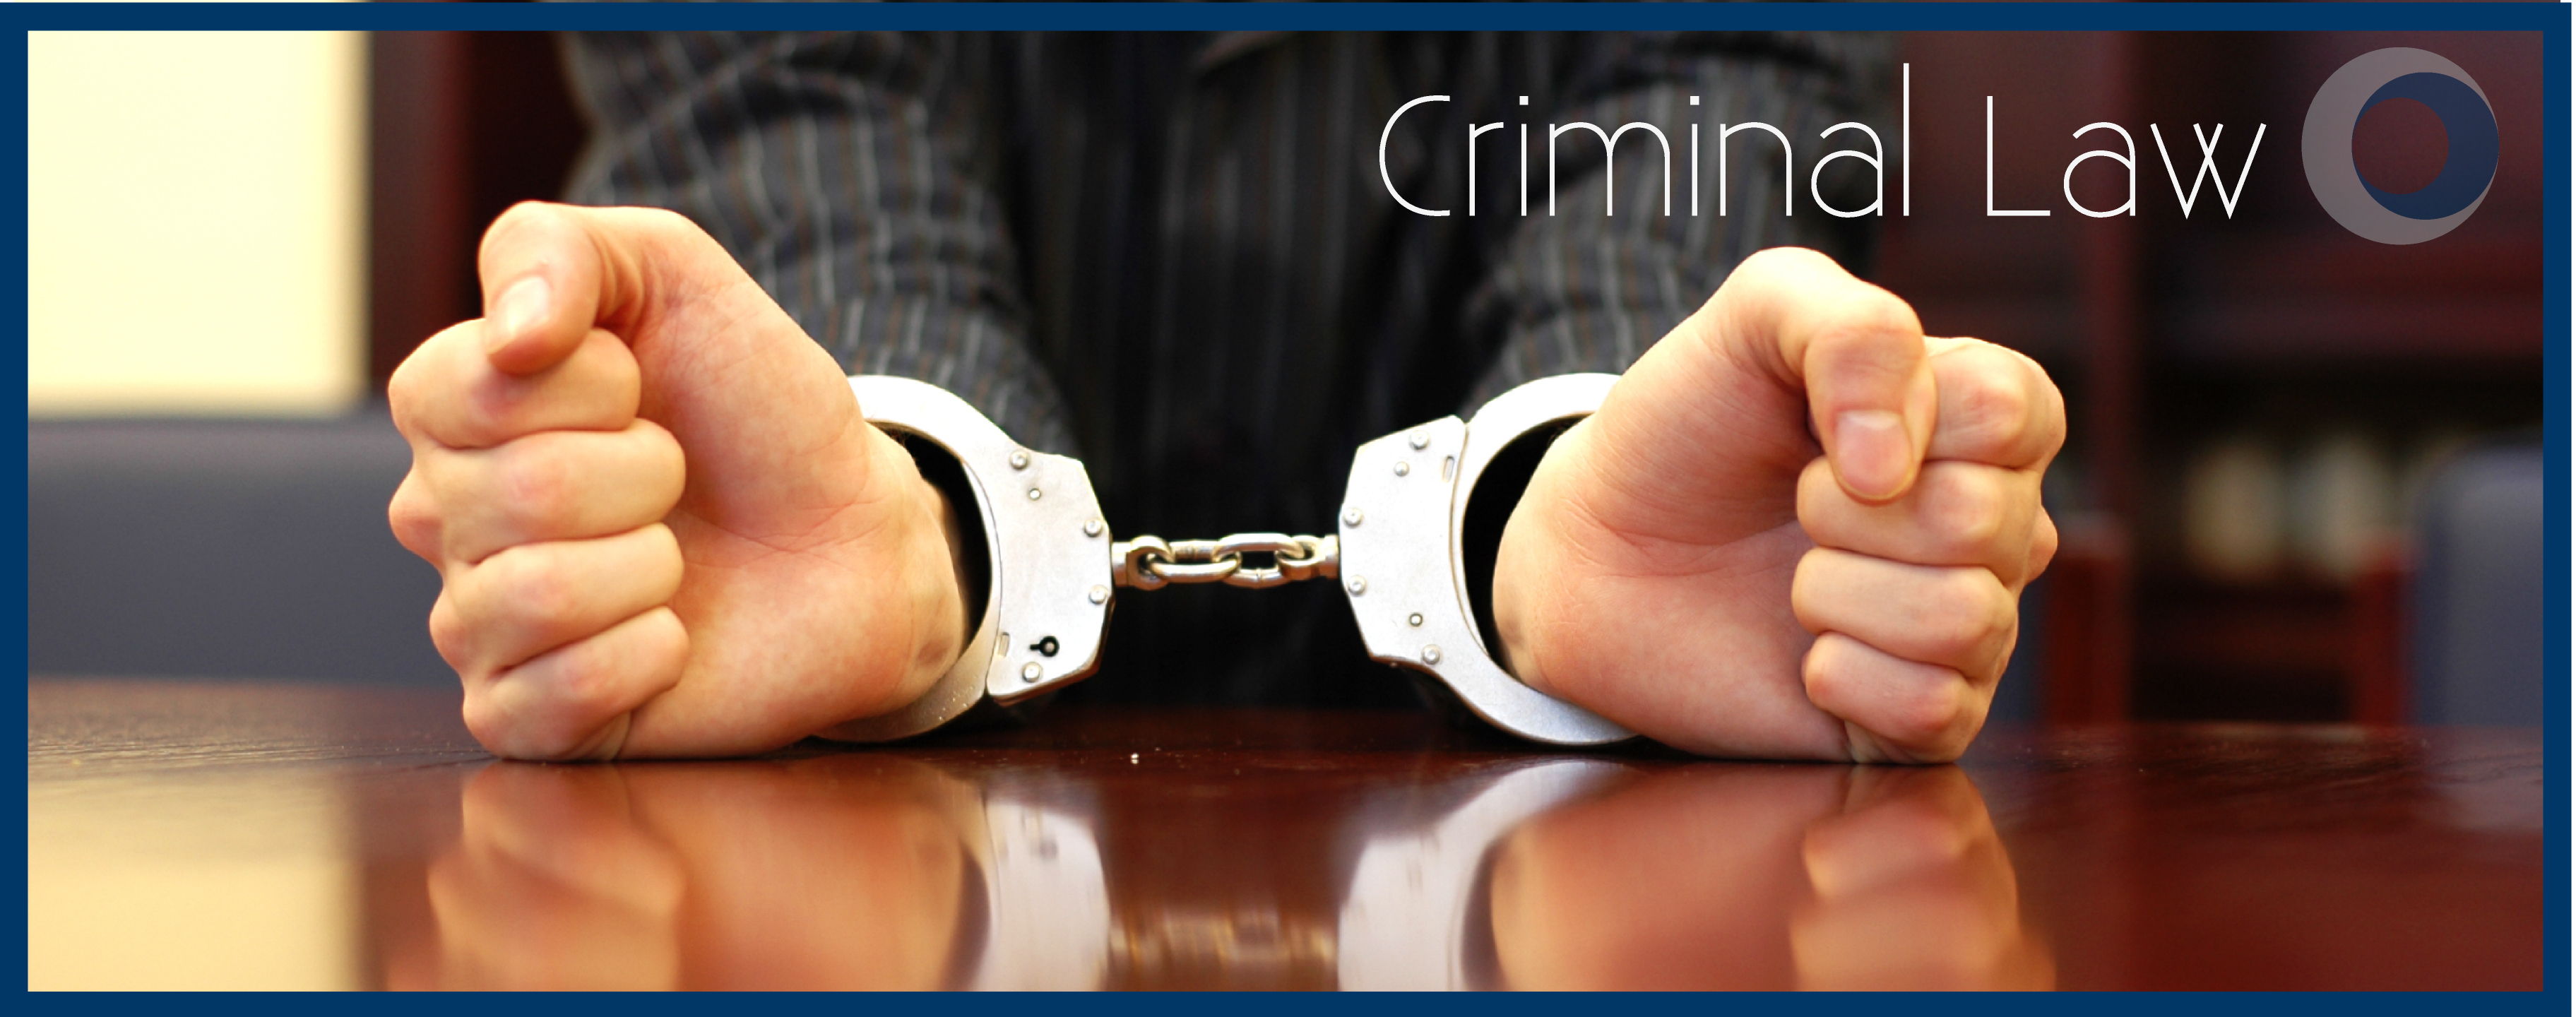 Things To Look For In A Criminal Defense Attorney